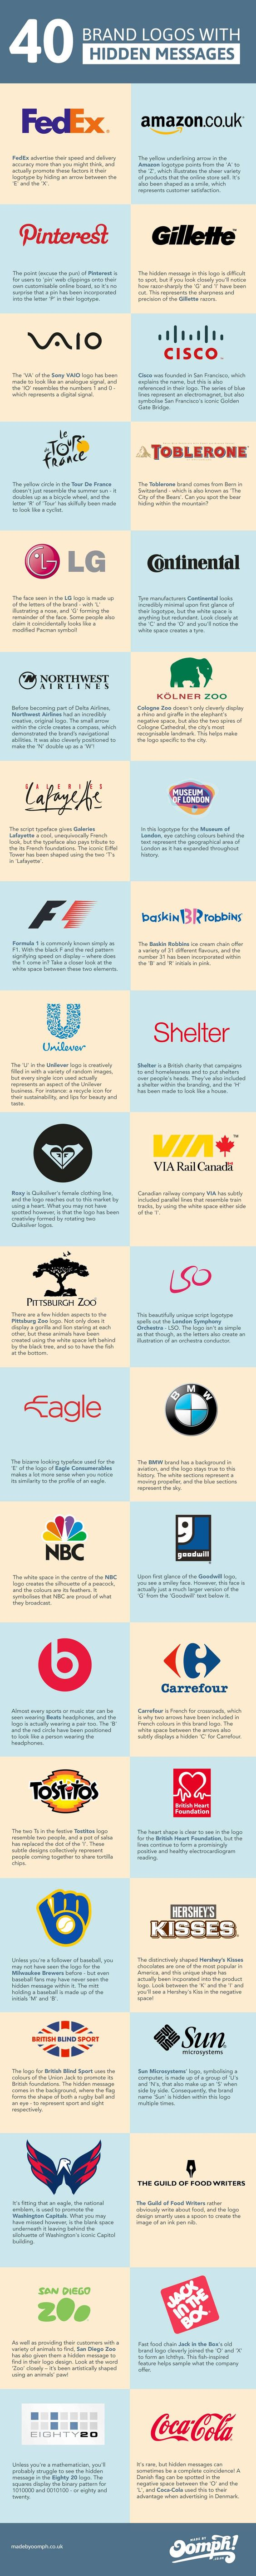 """i knew about most of these, but a few were new ... """"The hidden meaning behind 40 famous logos."""":"""